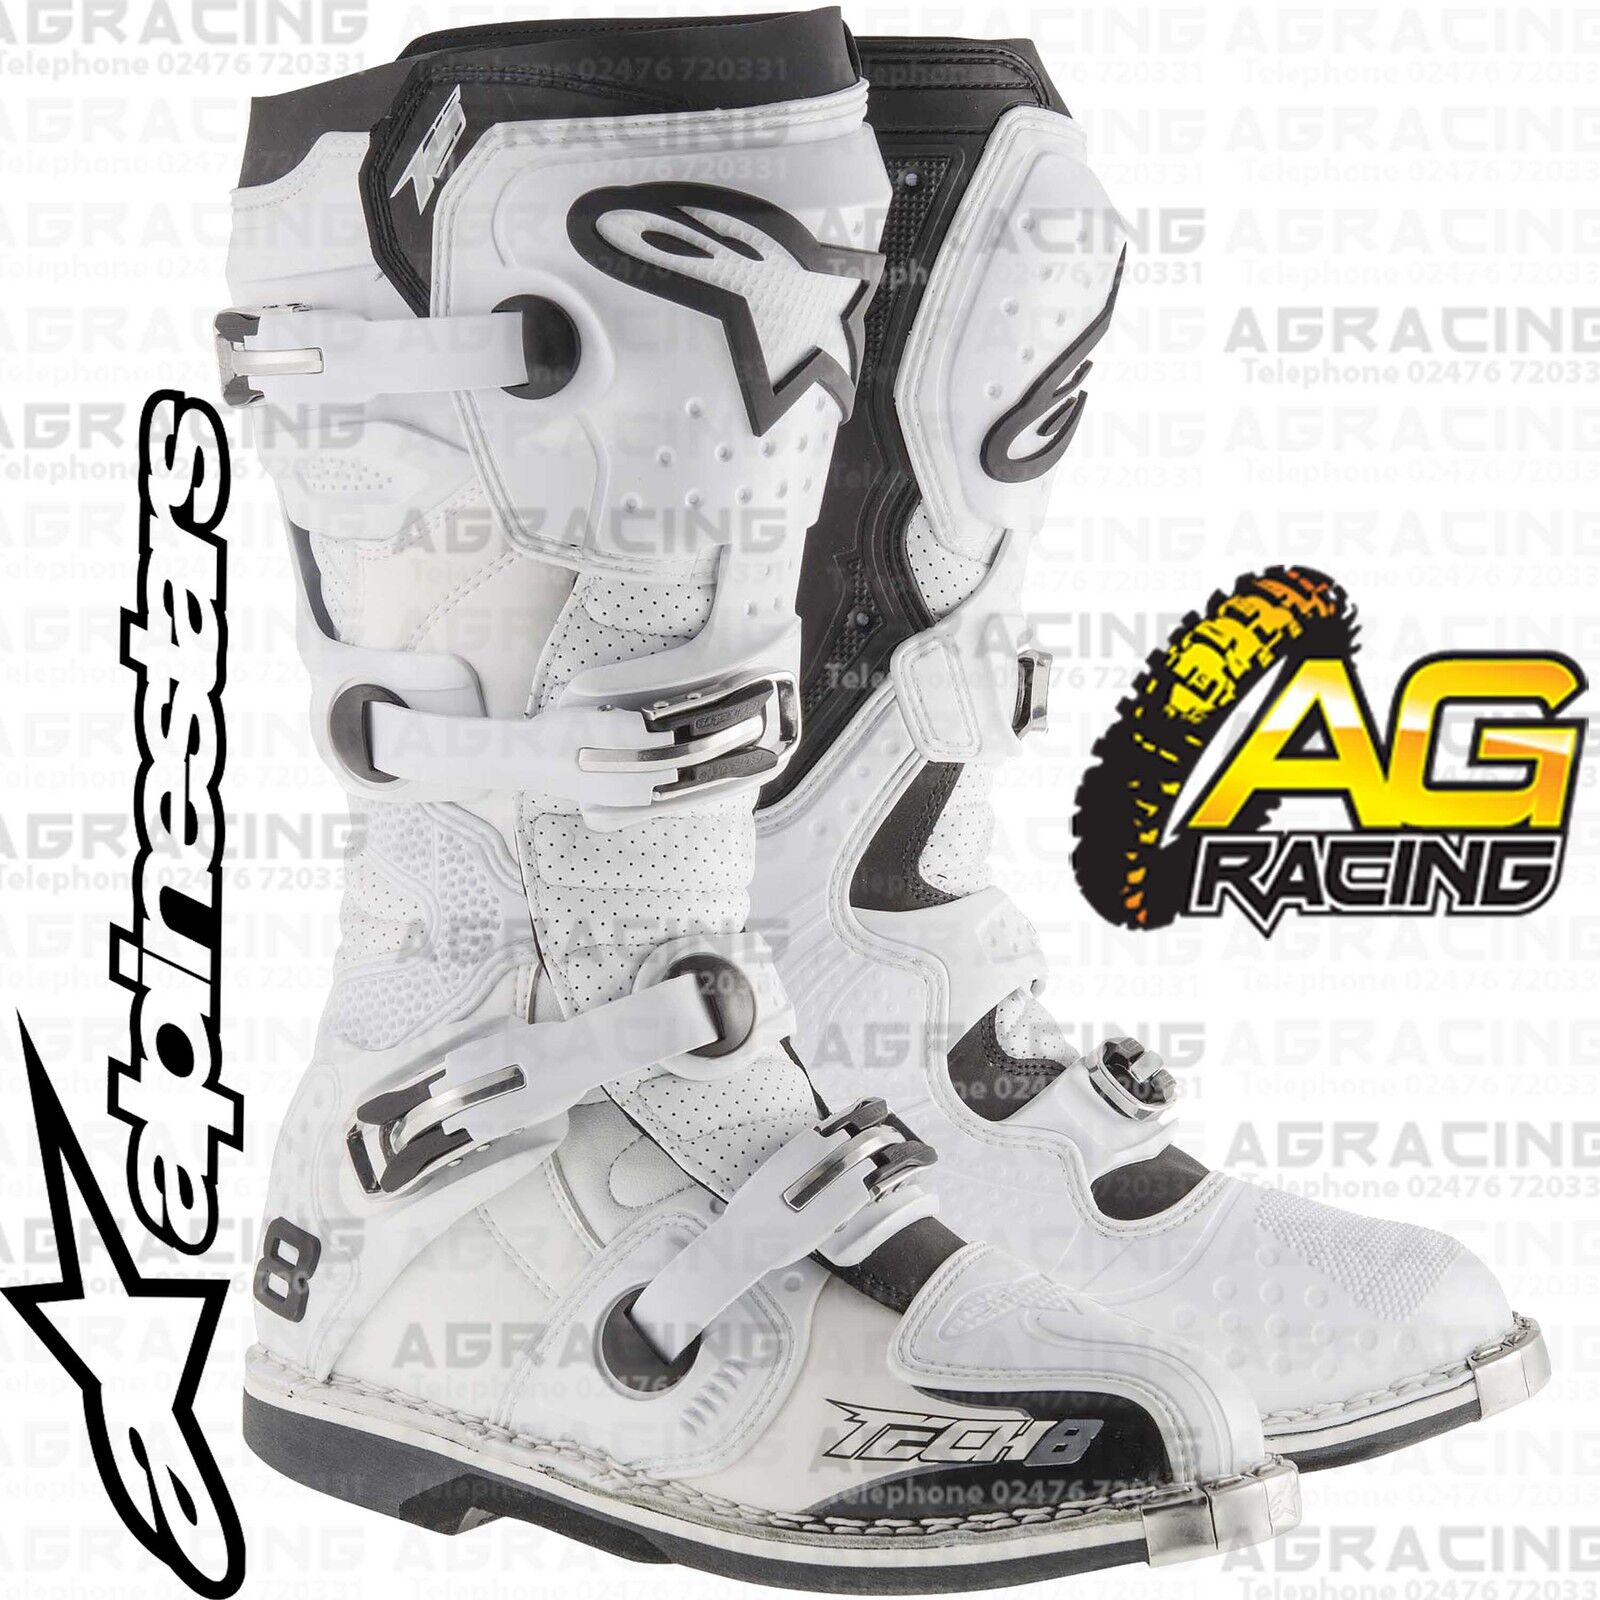 Alpinestars Buckle and Screw Set for 2015 Tech 5